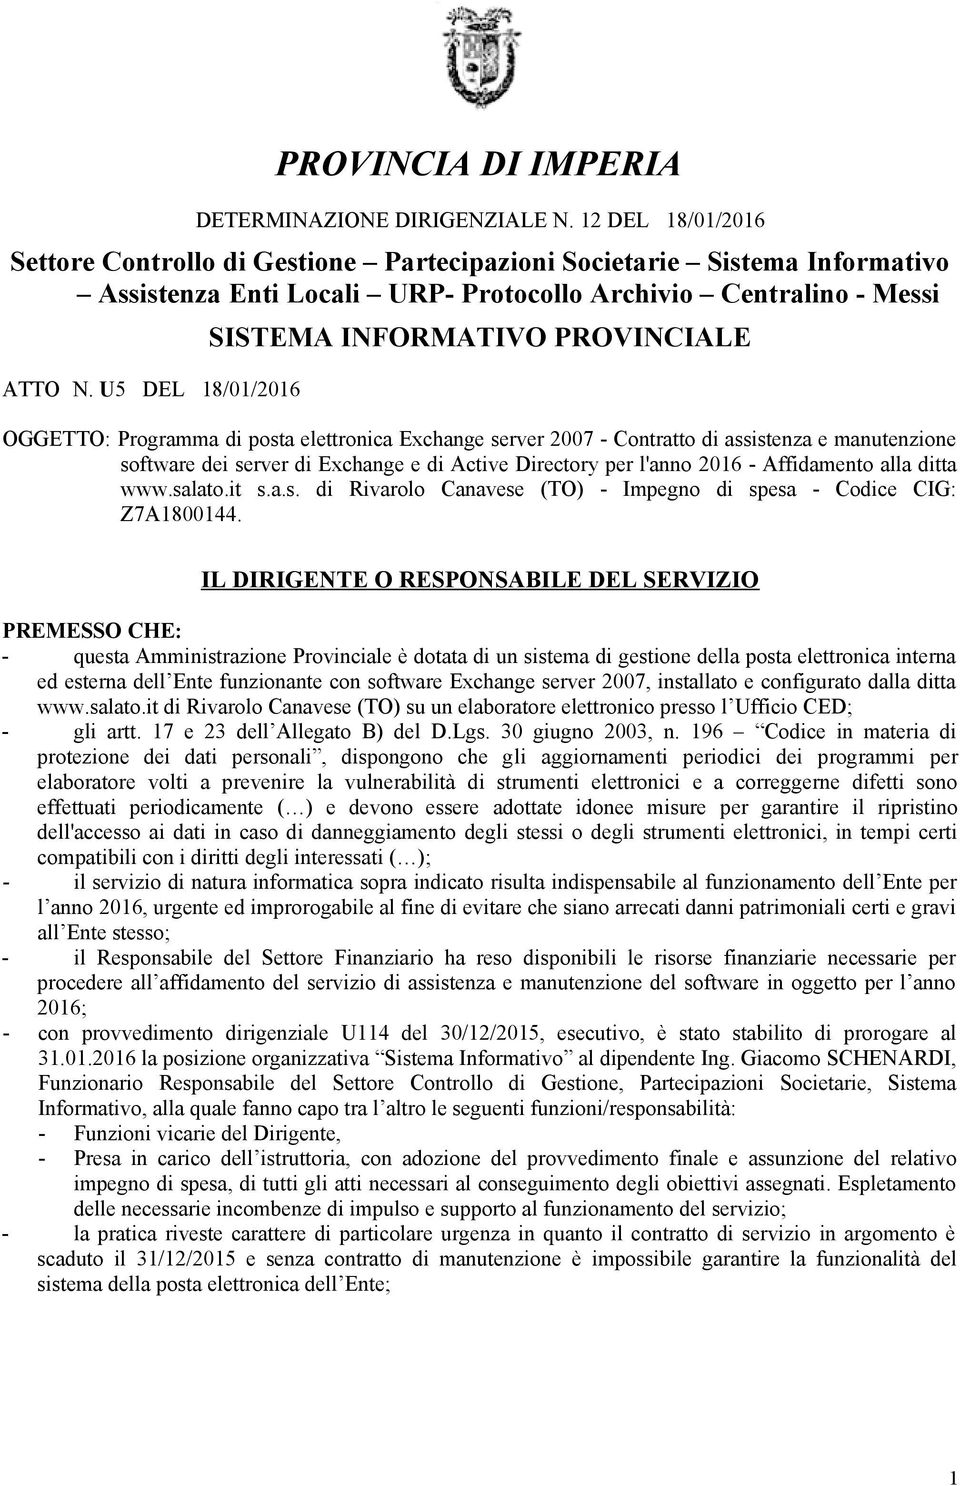 U5 DEL 18/01/2016 SISTEMA INFORMATIVO PROVINCIALE OGGETTO: Programma di posta elettronica Exchange server 2007 - Contratto di assistenza e manutenzione software dei server di Exchange e di Active